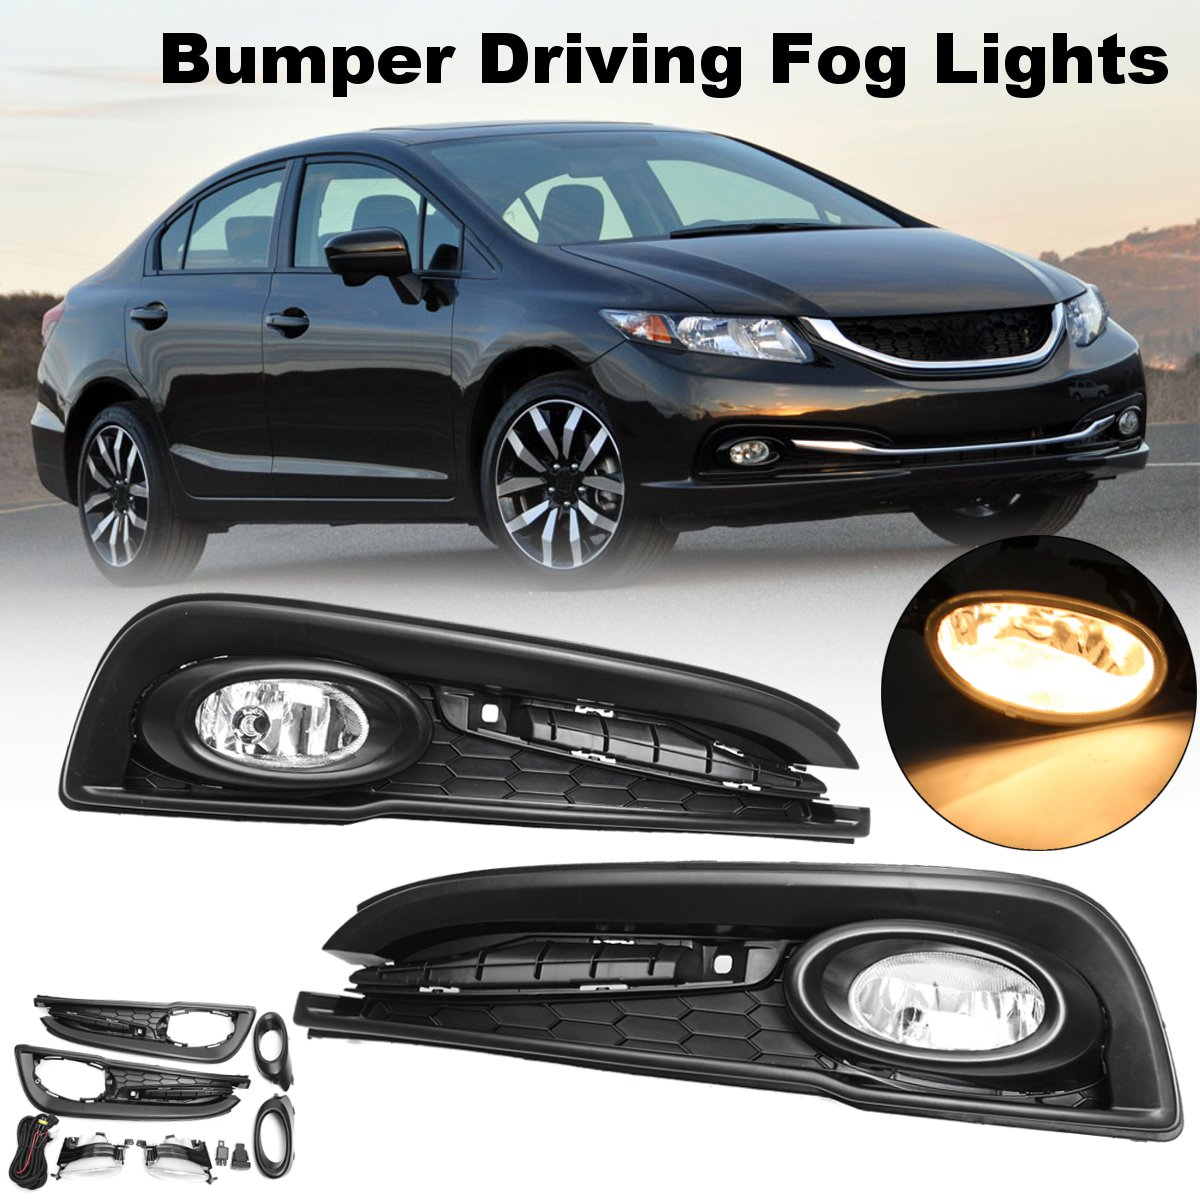 for Honda for Civic 4DR Sedan 2013~2015 1 Pair H11 55W DC 12V Clear Bumper Driving Fog Lights w/ Wiring Harness Replacements h3 55w car lamps wiring harness kit w fuse switch dc 12v